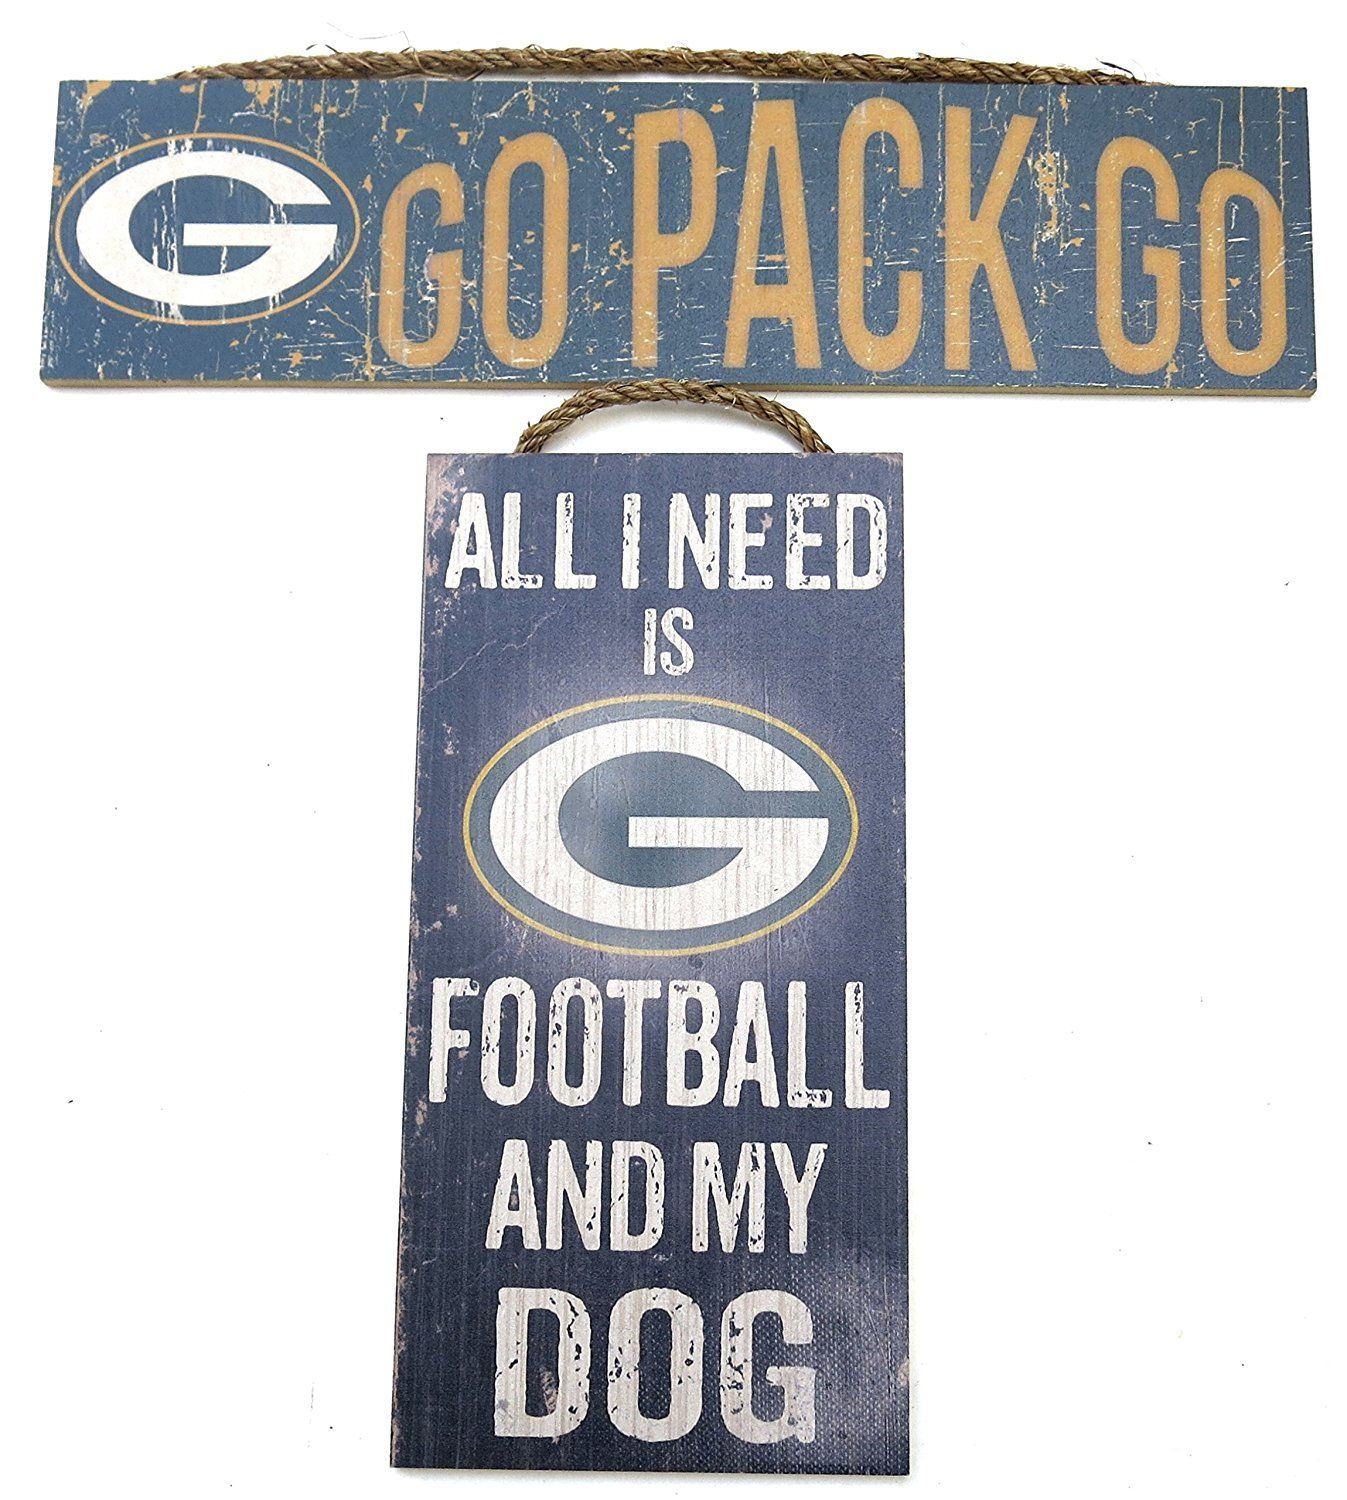 Green bay packers nfl wall decor set of two plaques dog all green bay packers nfl wall decor set of two plaques dog all i need is my dog and my team and go pack go team slogan sign set of two amipublicfo Image collections